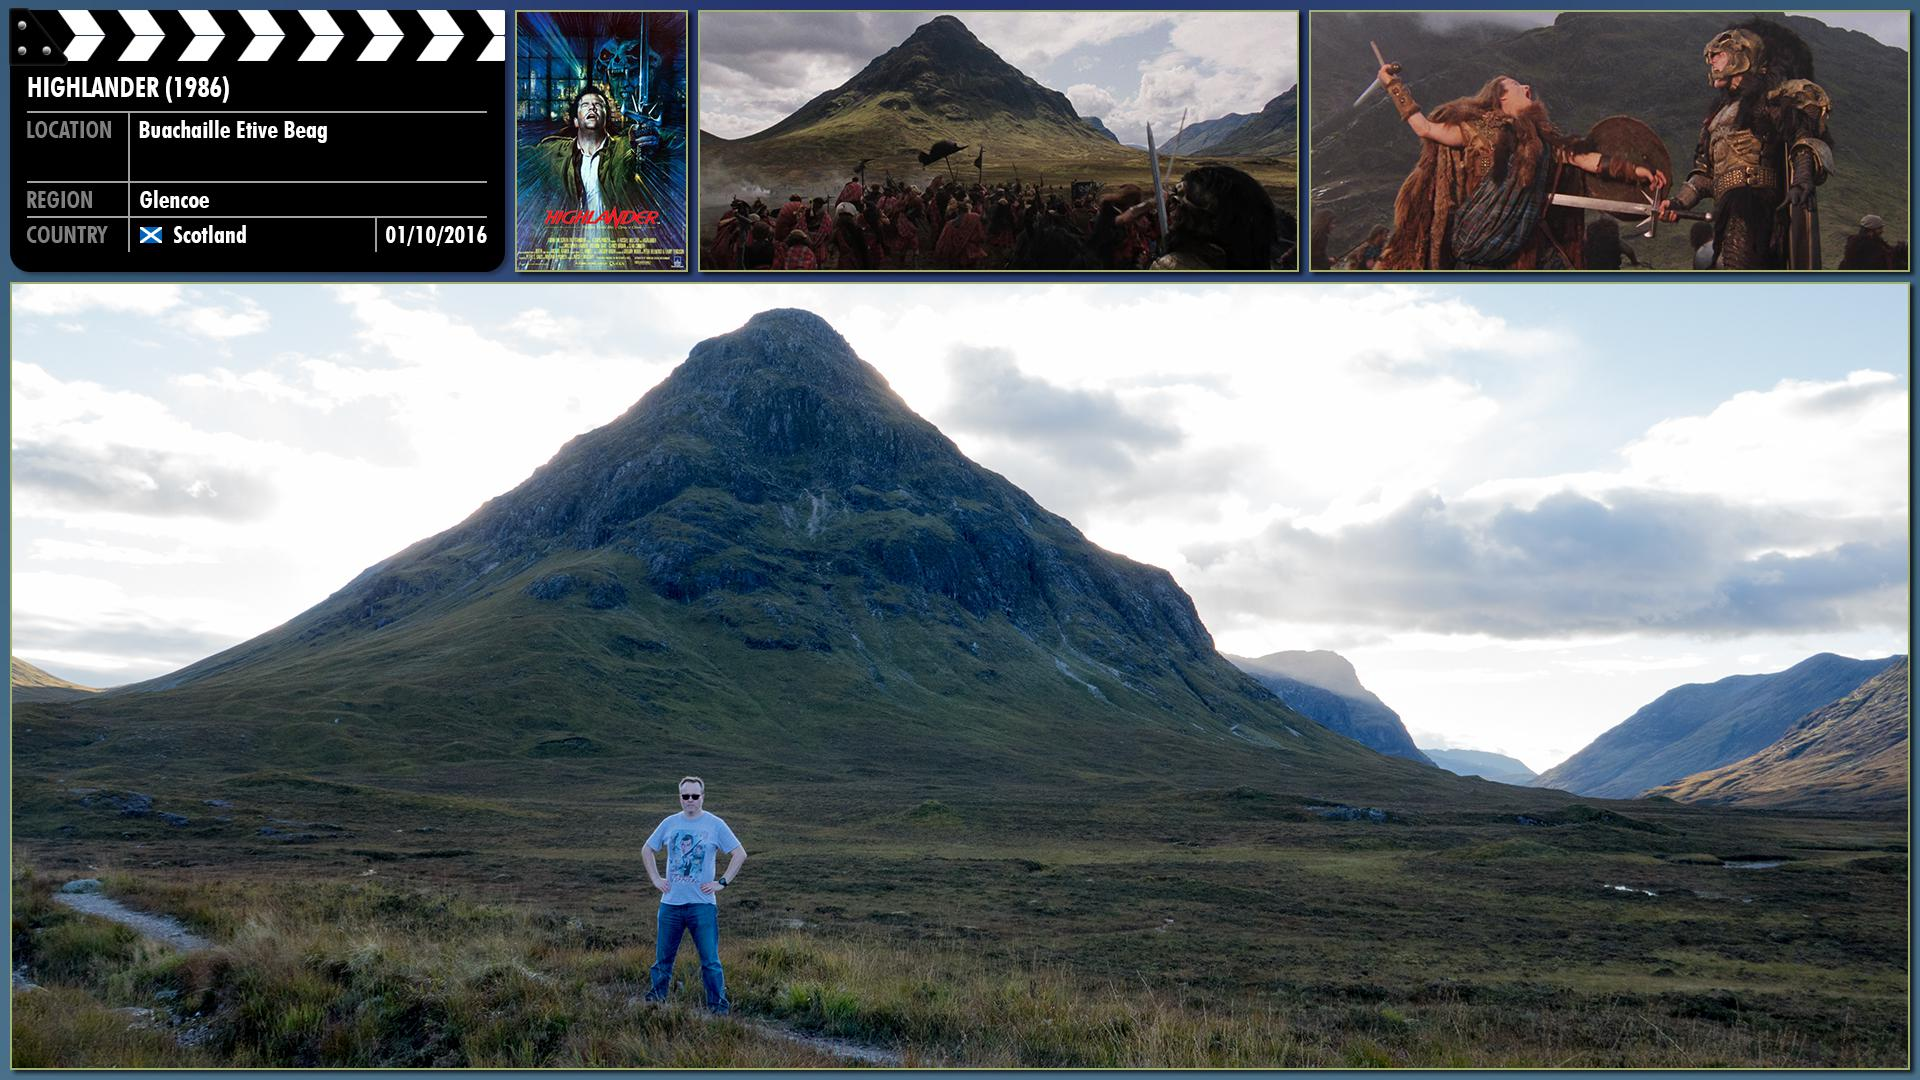 Filming location photo for Highlander (1986) 7 of 8